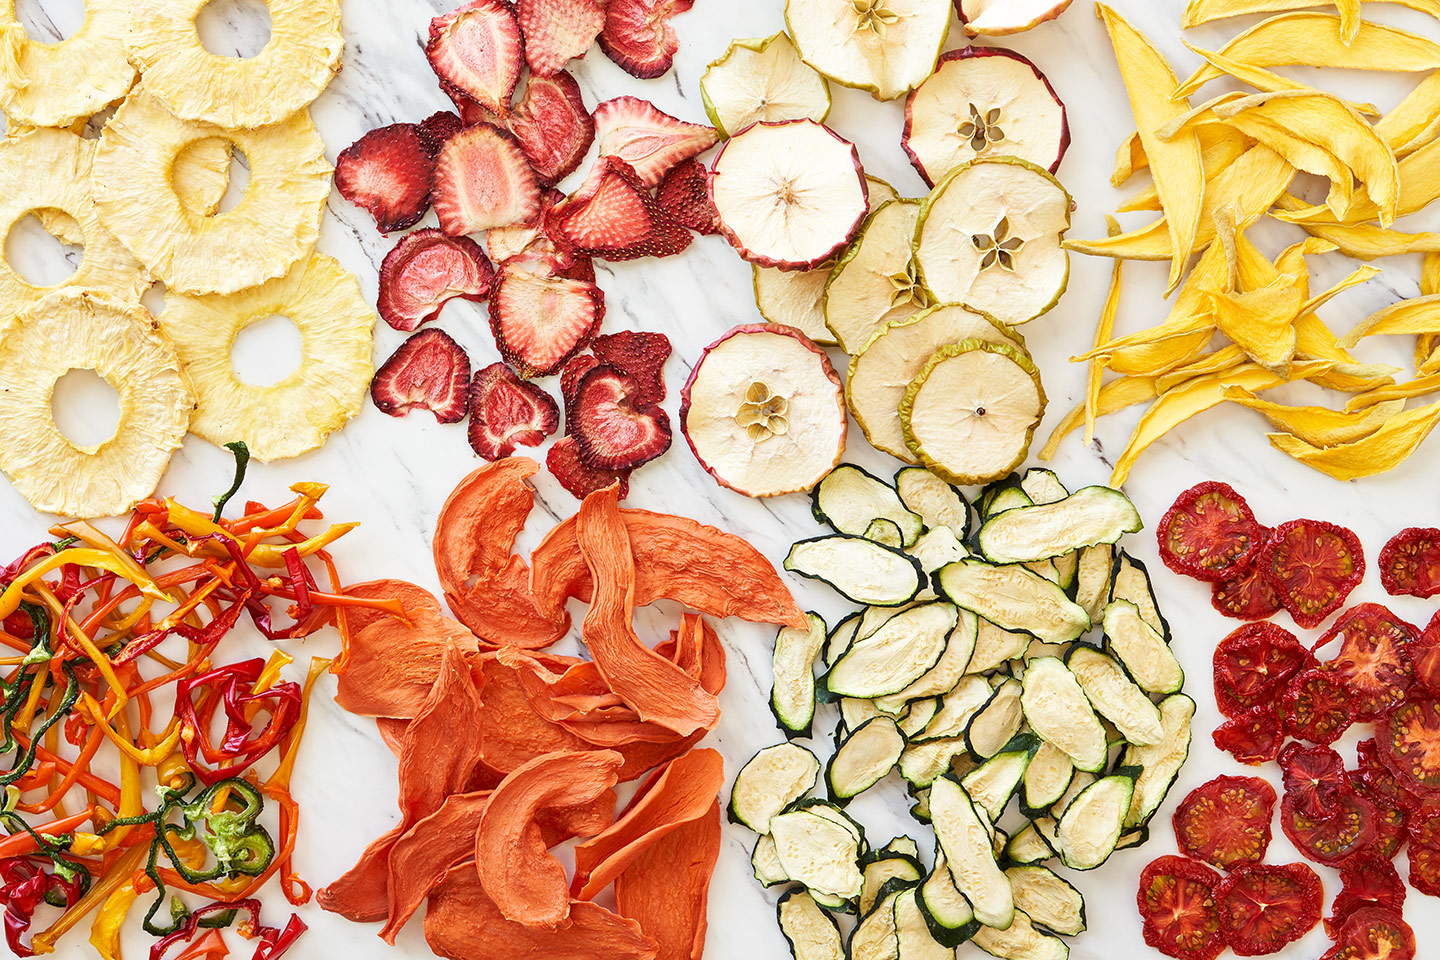 Dried Fruit and Vegetable Snack